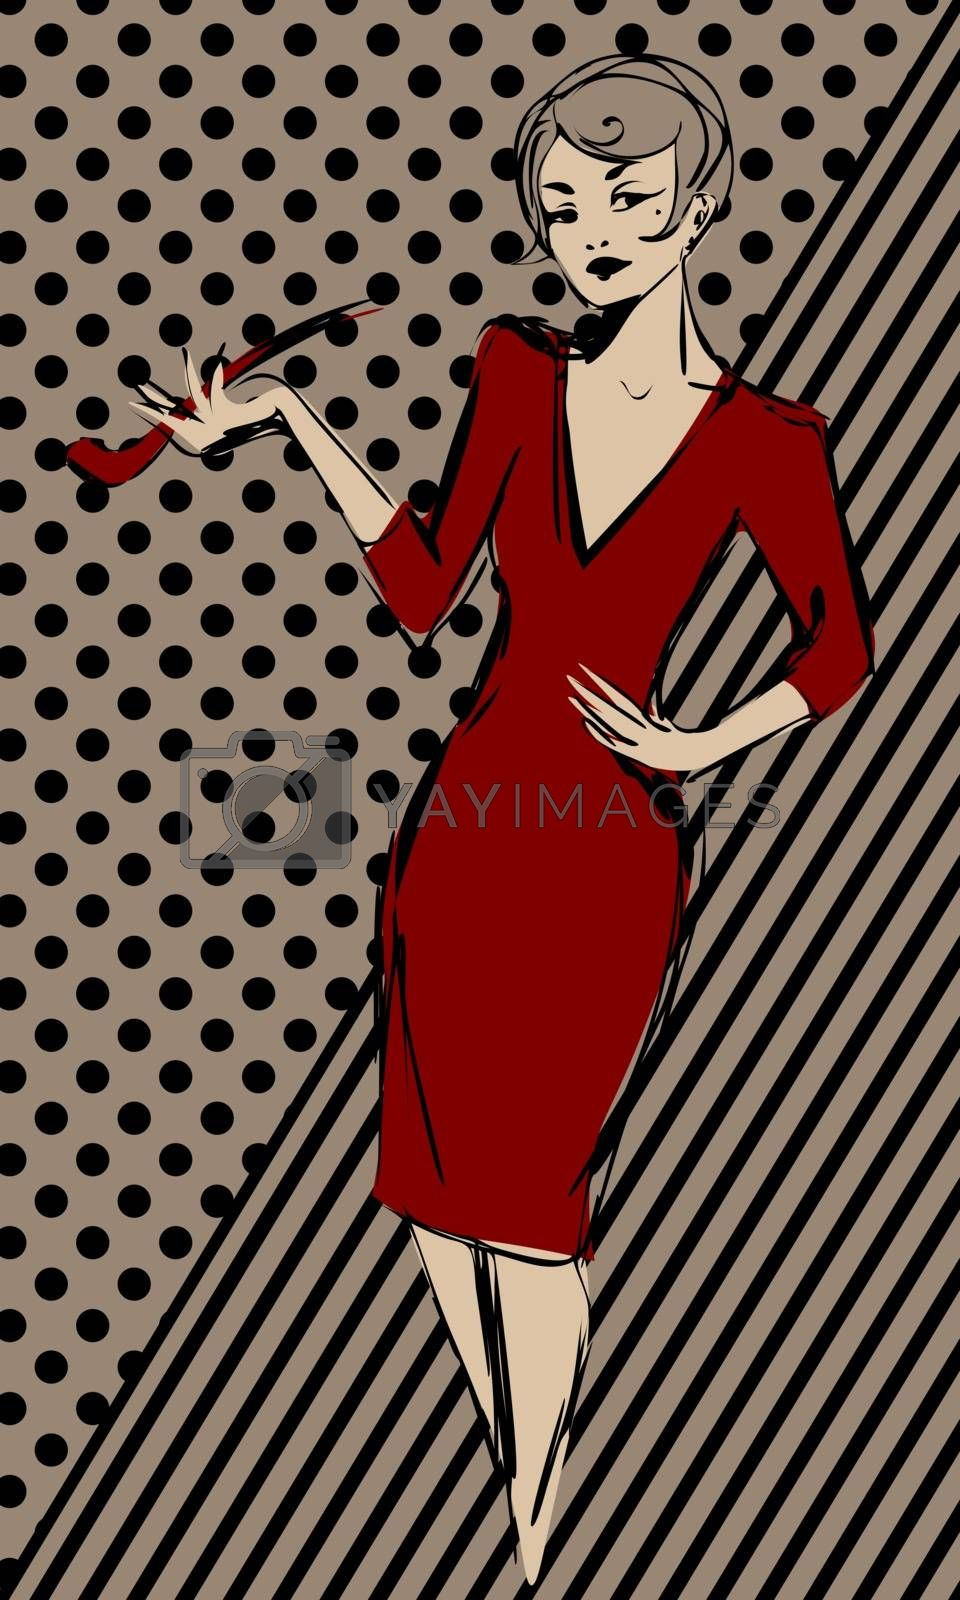 Old-fasioned woman in red dress with tobacco pipe on abstract vintage background